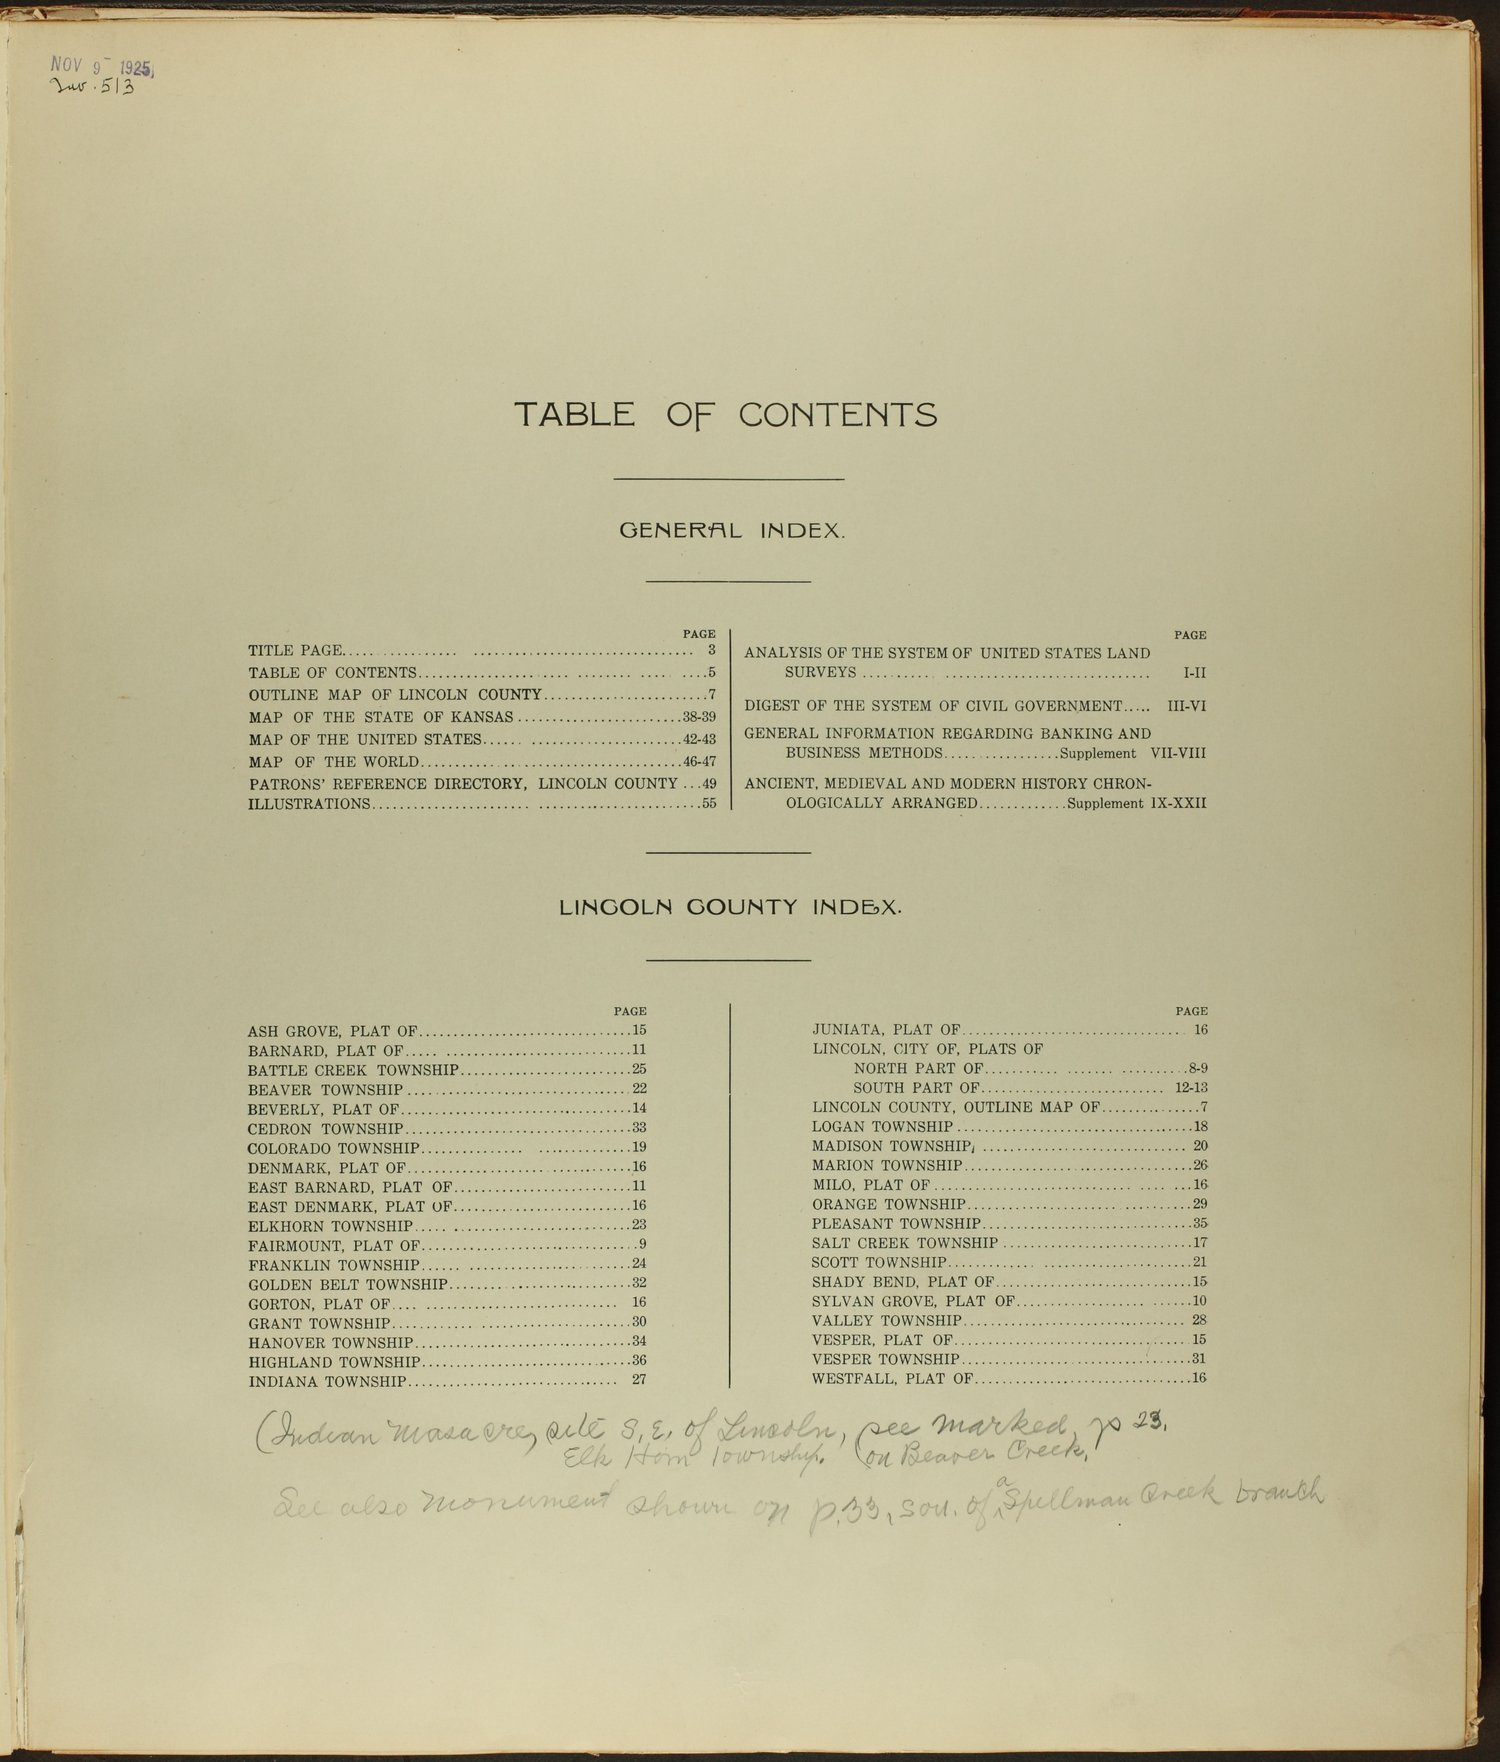 Standard atlas of Lincoln County, Kansas - Table of Contents